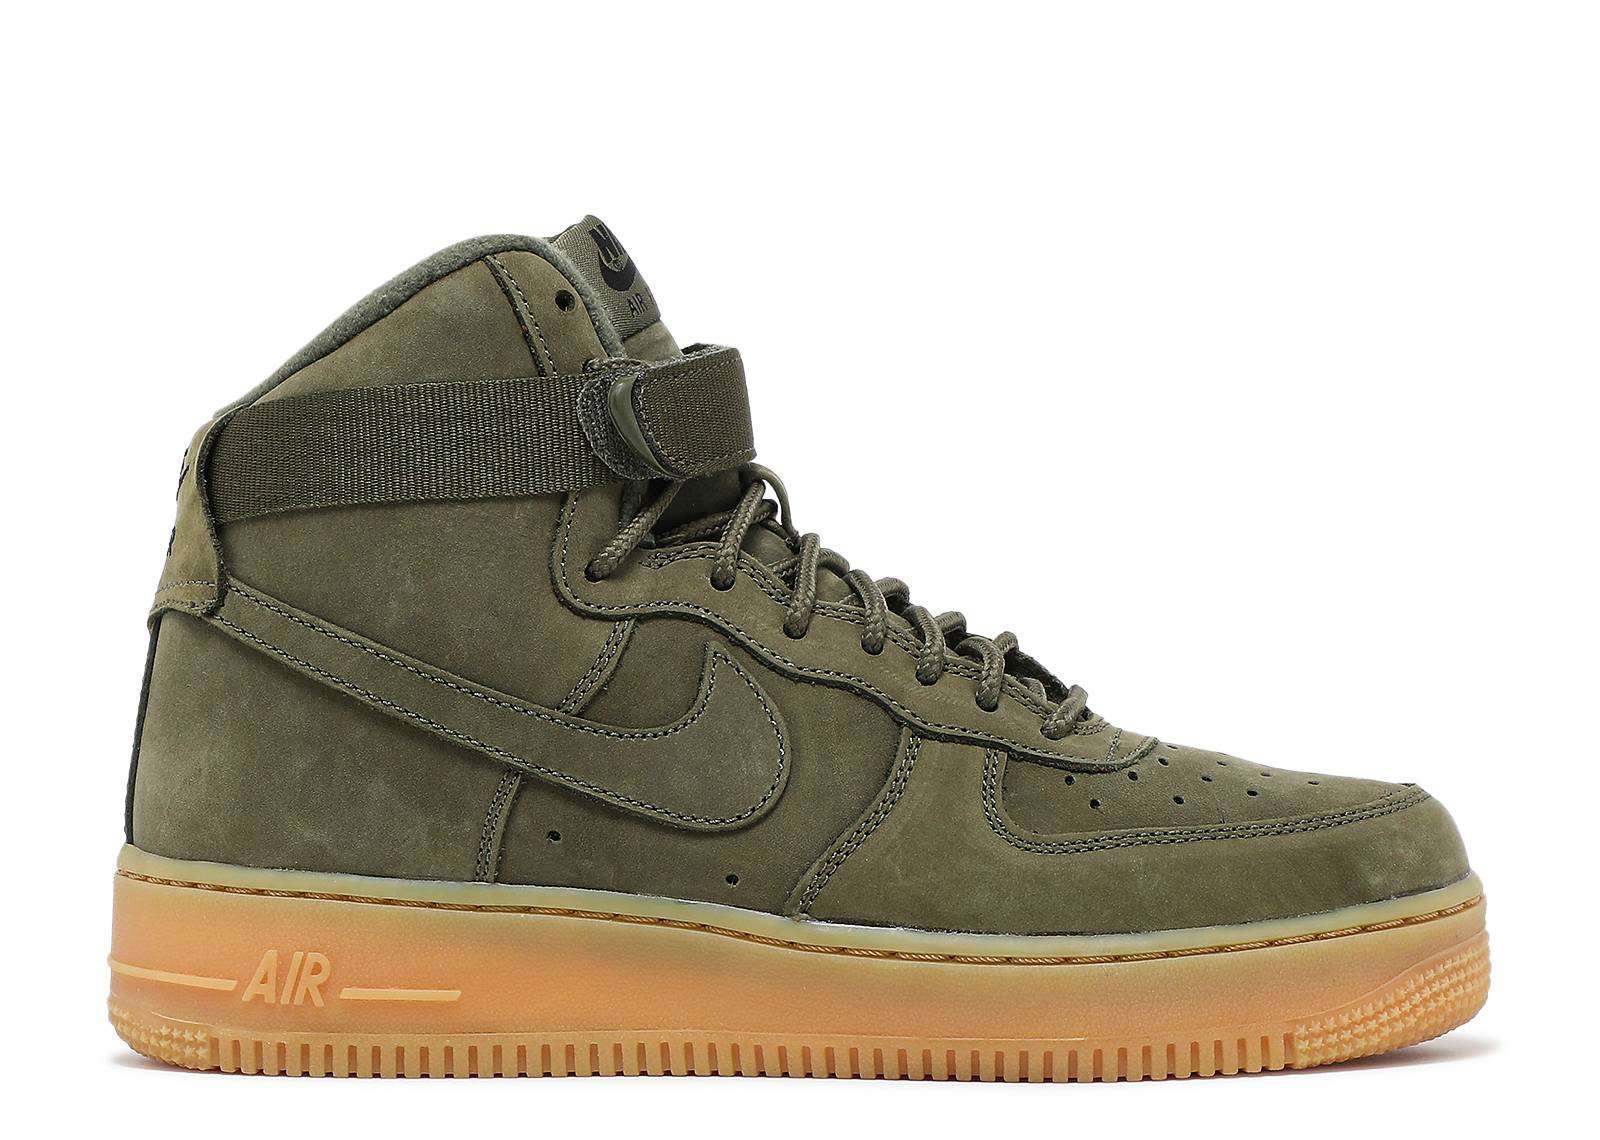 pretty nice dffad e9acb NIKE Air Force 1 High WB GS Flax 922066600 - tualu.org